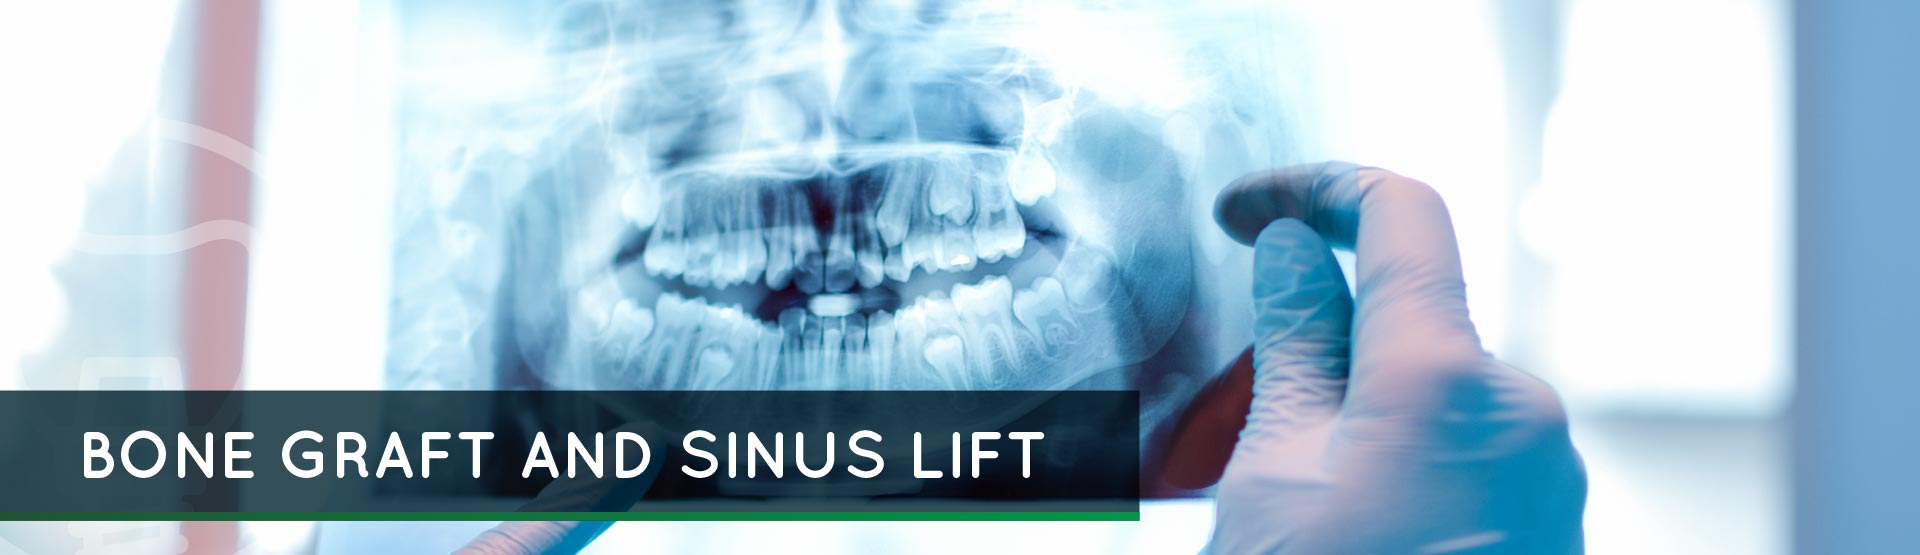 Bone Graft and Sinus Lift – Cosmetic Dental Care and Implant